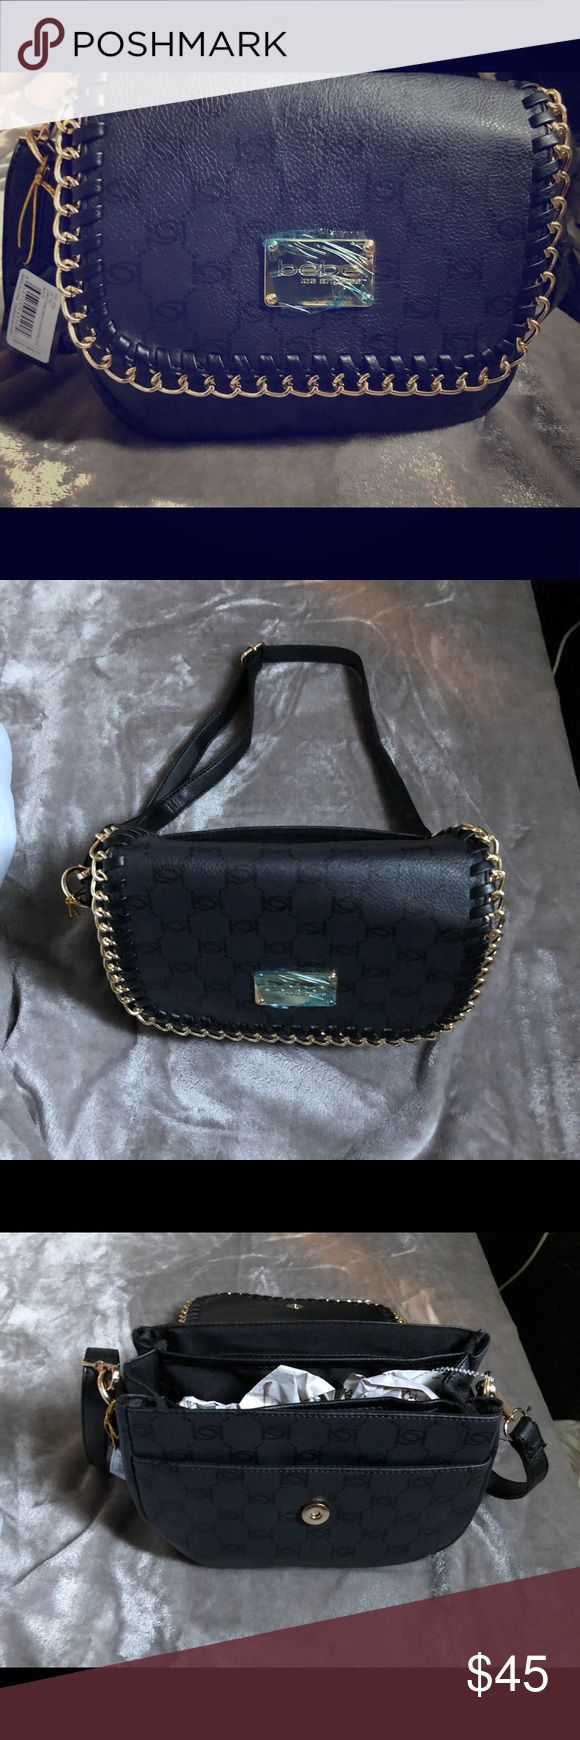 New Christine black & gold crossbody Bebe purse Brand new. Size: 9 inches x 8 inches. Firm with price. Material: faux leather. Super cute and no flaws. trades and low ballers. bebe Bags Crossbody Bags